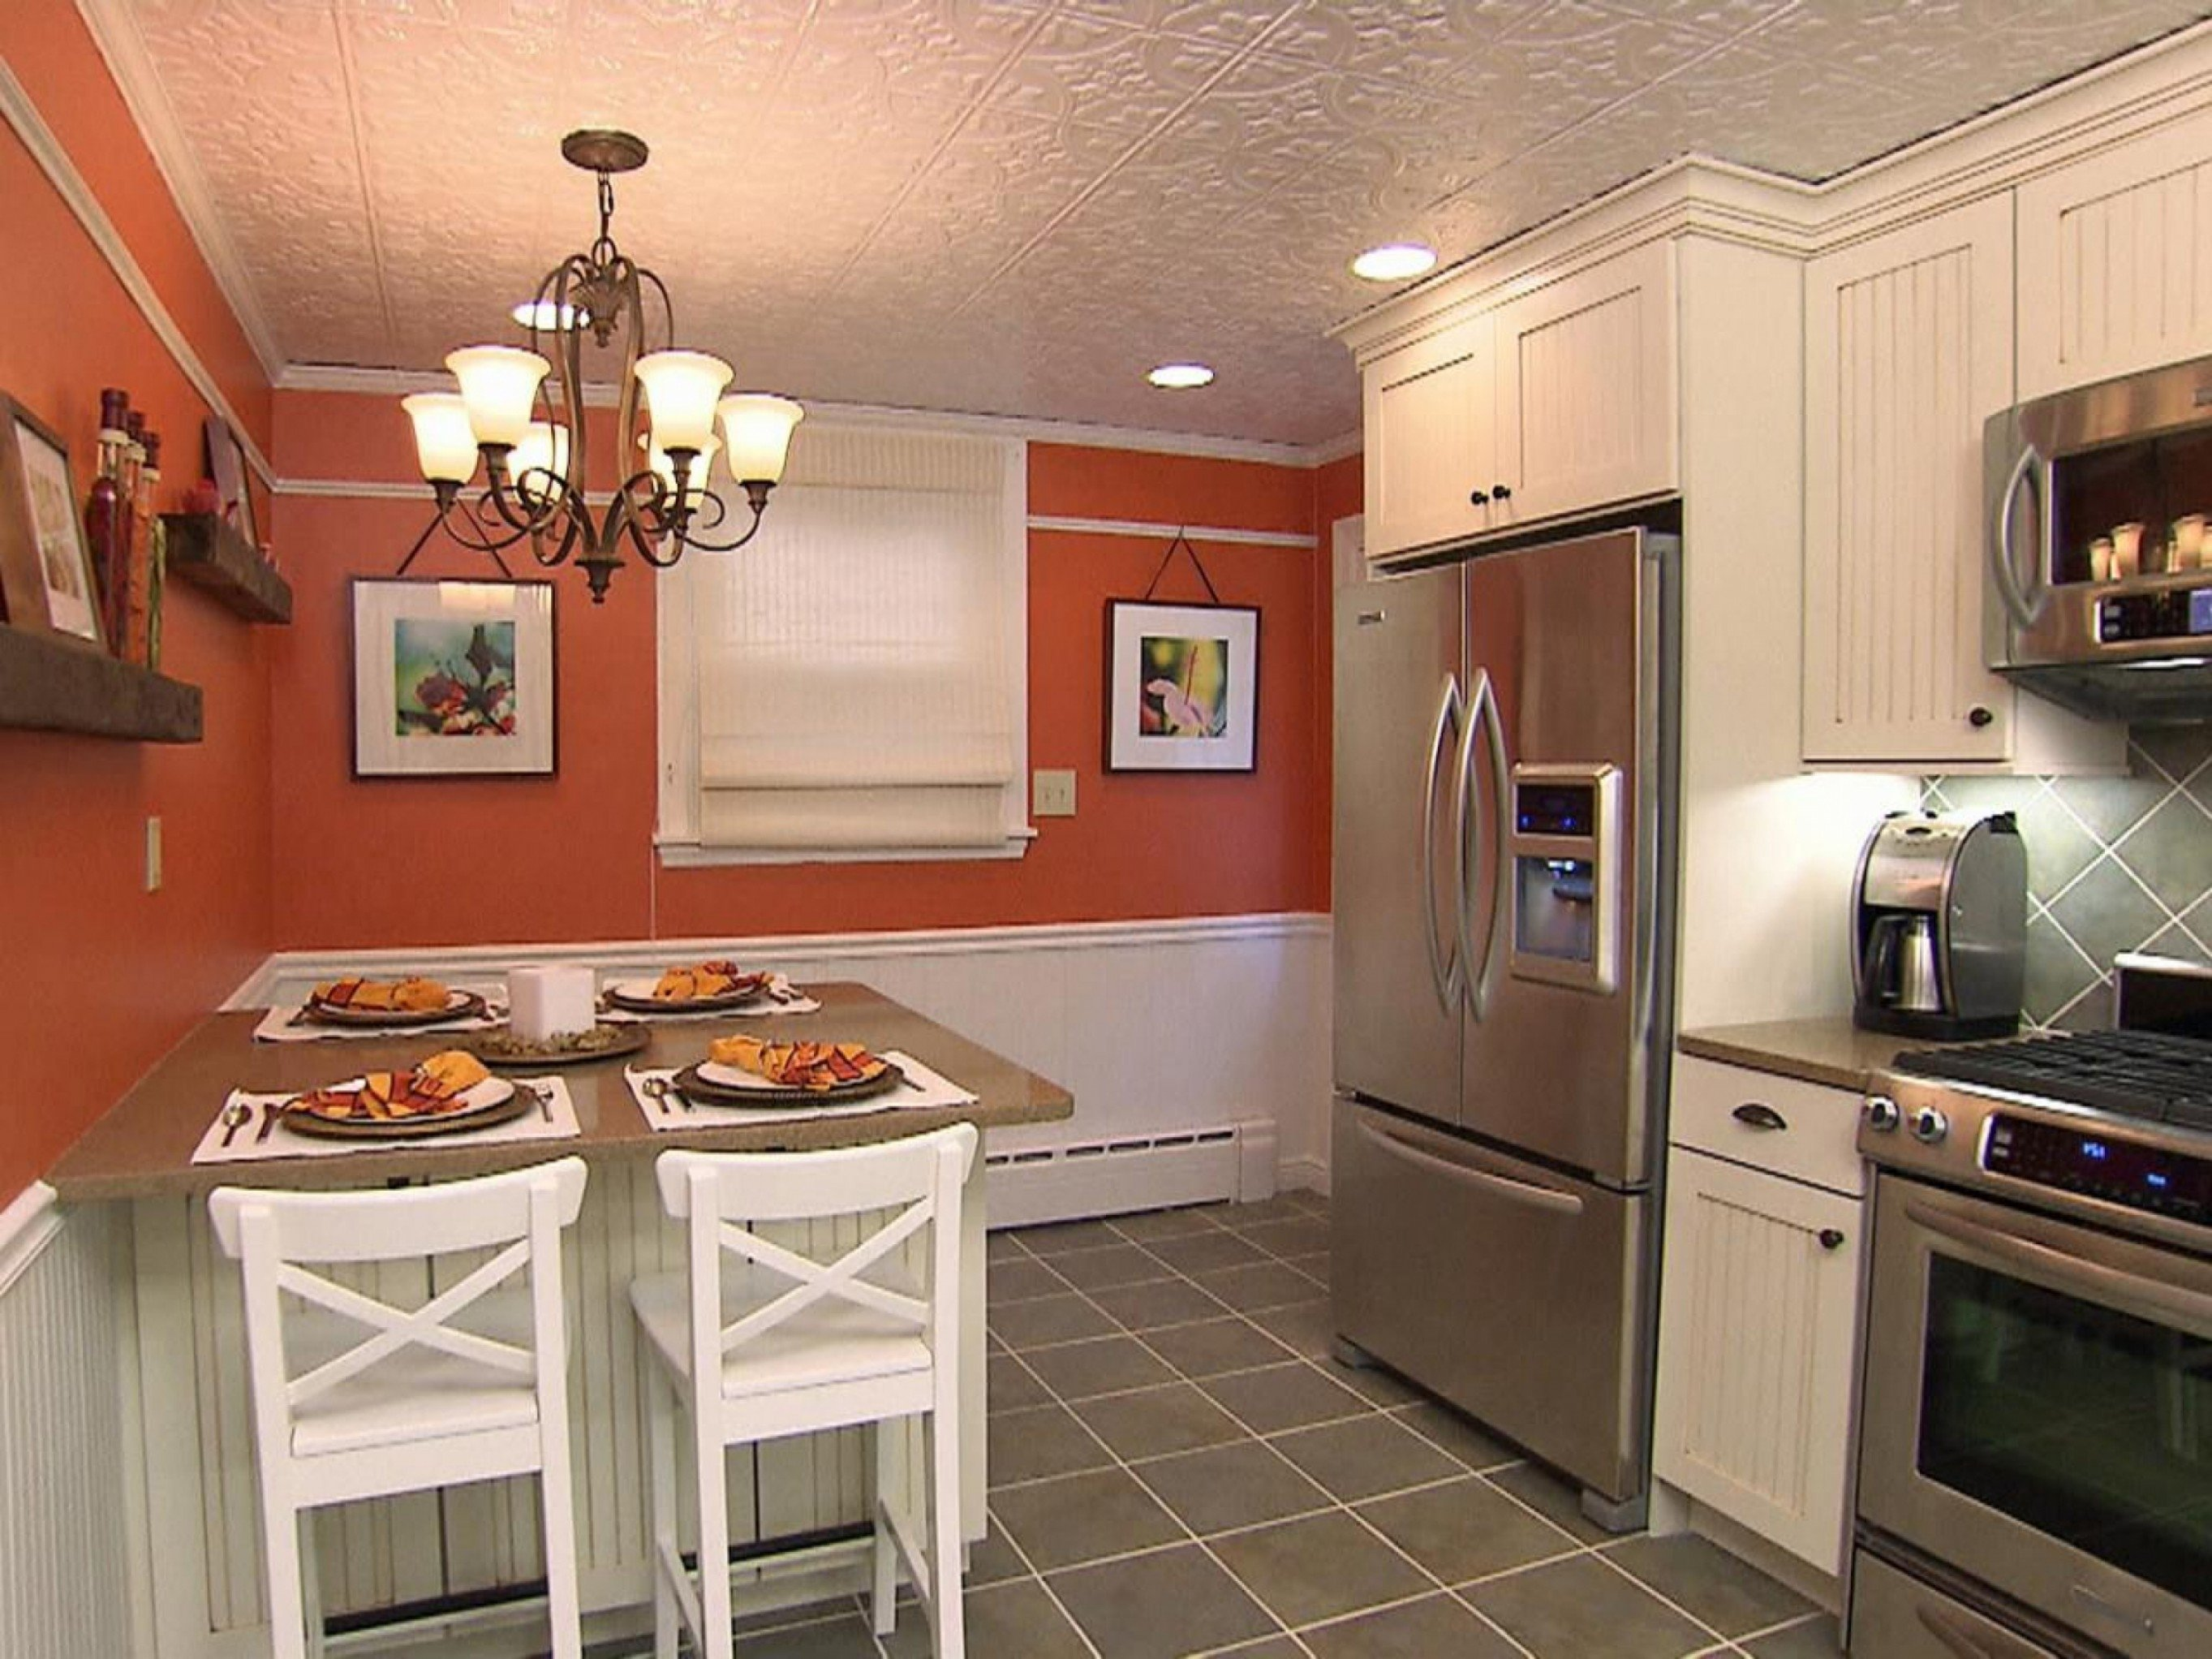 10 Most Recommended Small Eat In Kitchen Ideas marvellous small eat in kitchen design ideas 45 for your home